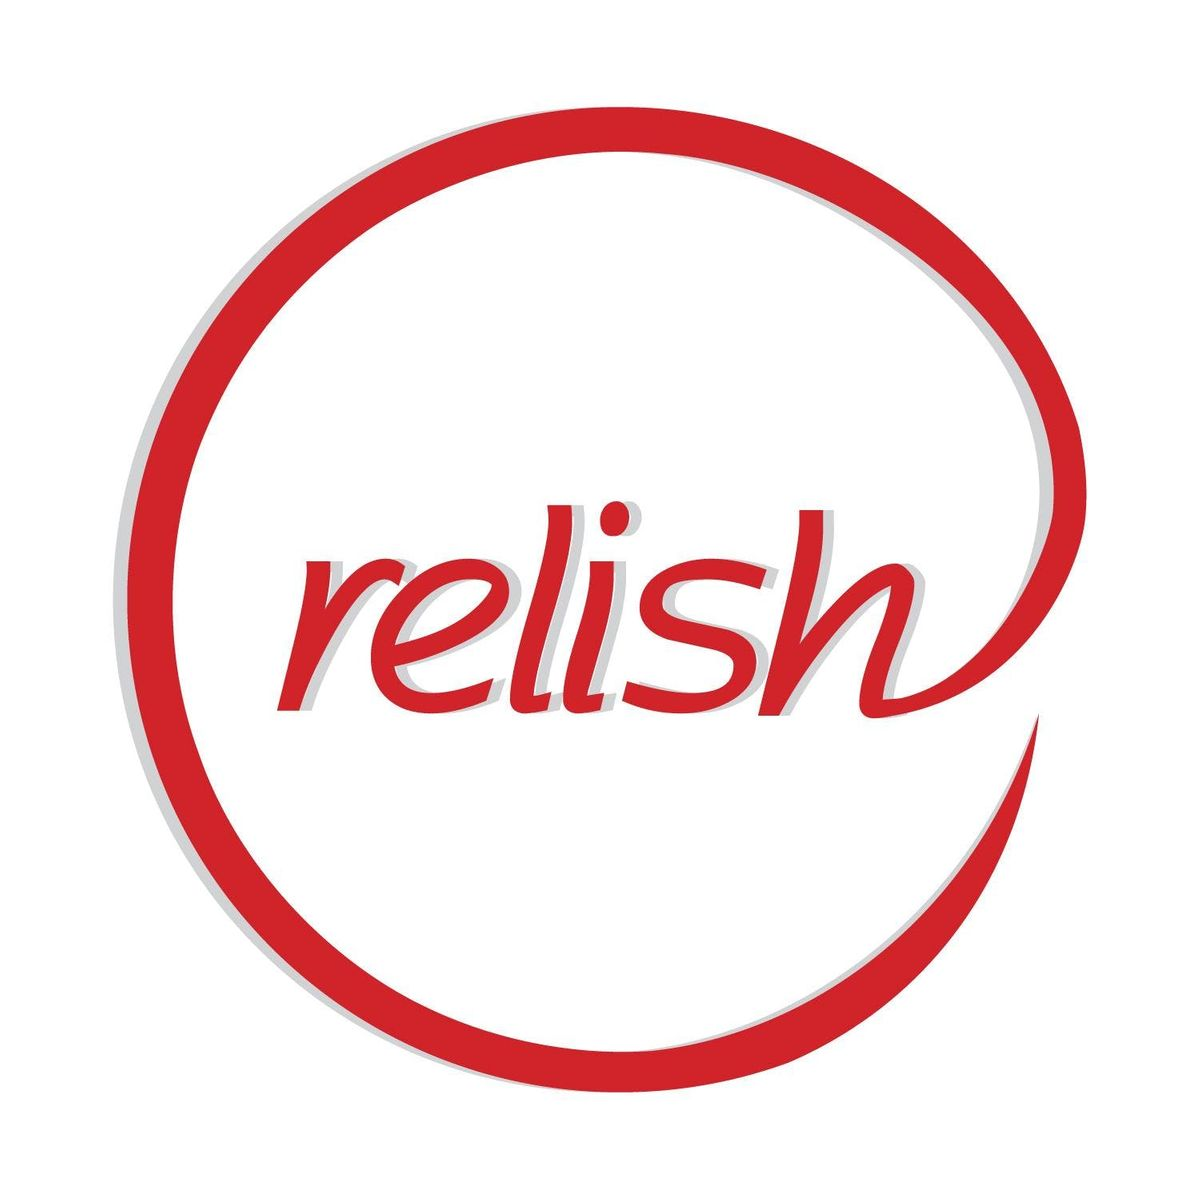 Relish Speed Dating Event in Cincinnati  Saturday Night for Singles  Who Do You Relish